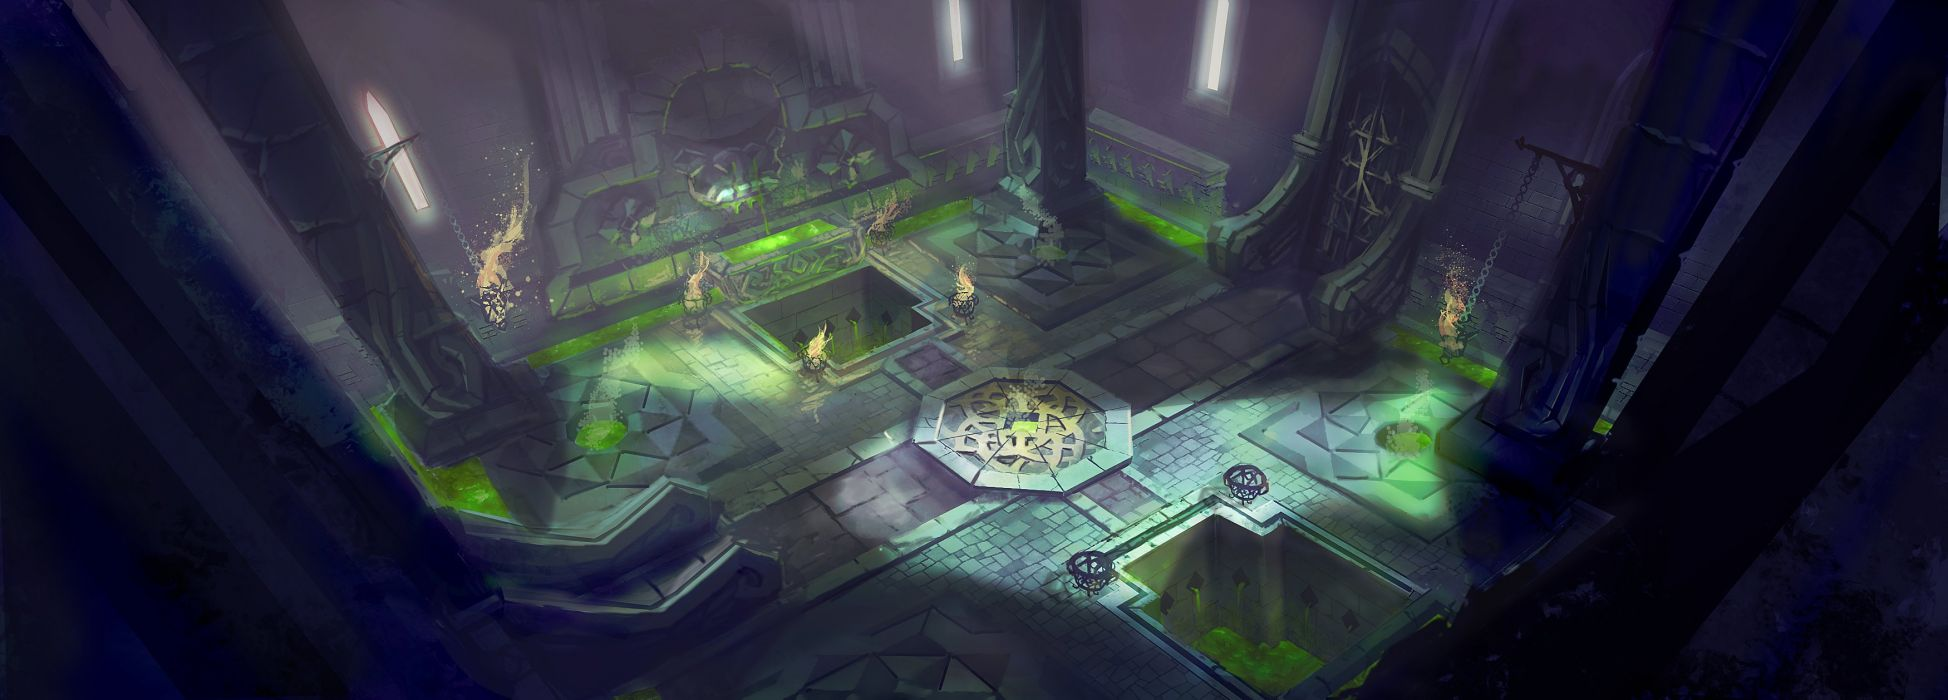 MIGHTY-QUEST-EPIC-LOOT medieval fantasy real-time strategy family mighty quest epic loot (1) wallpaper